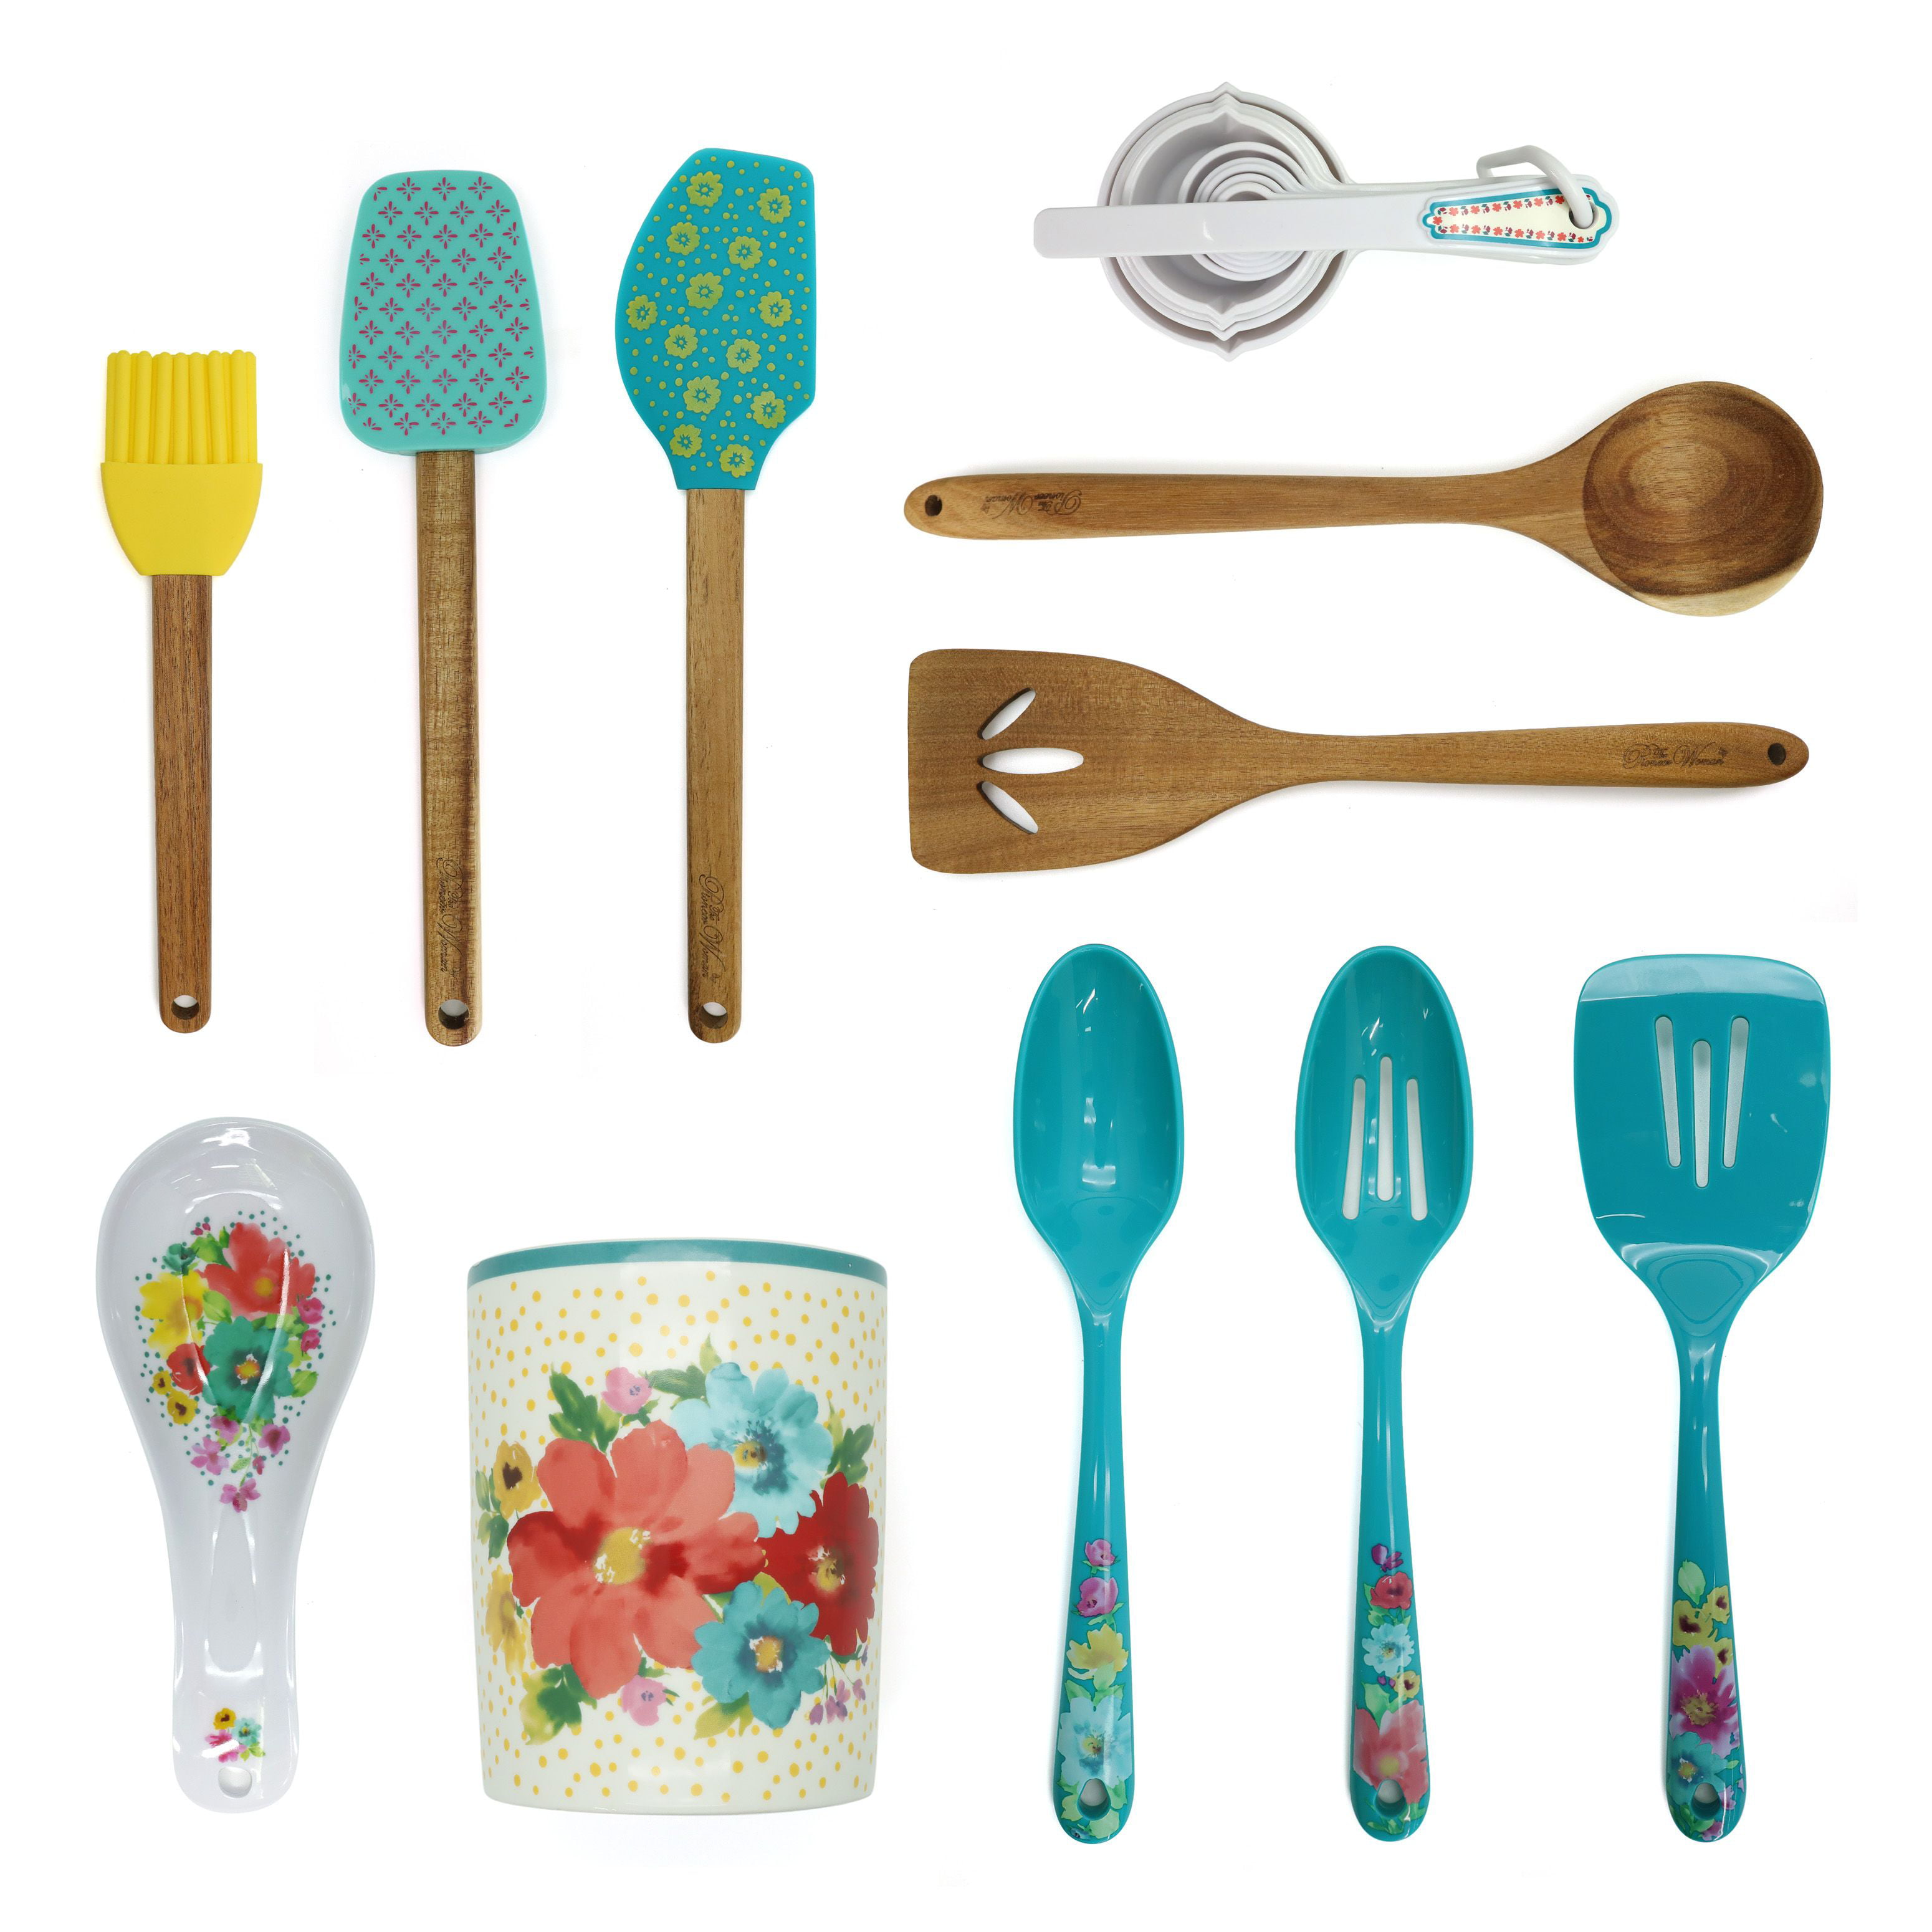 The Pioneer Woman Breezy Blossom 20-Piece Tool and Crock Set